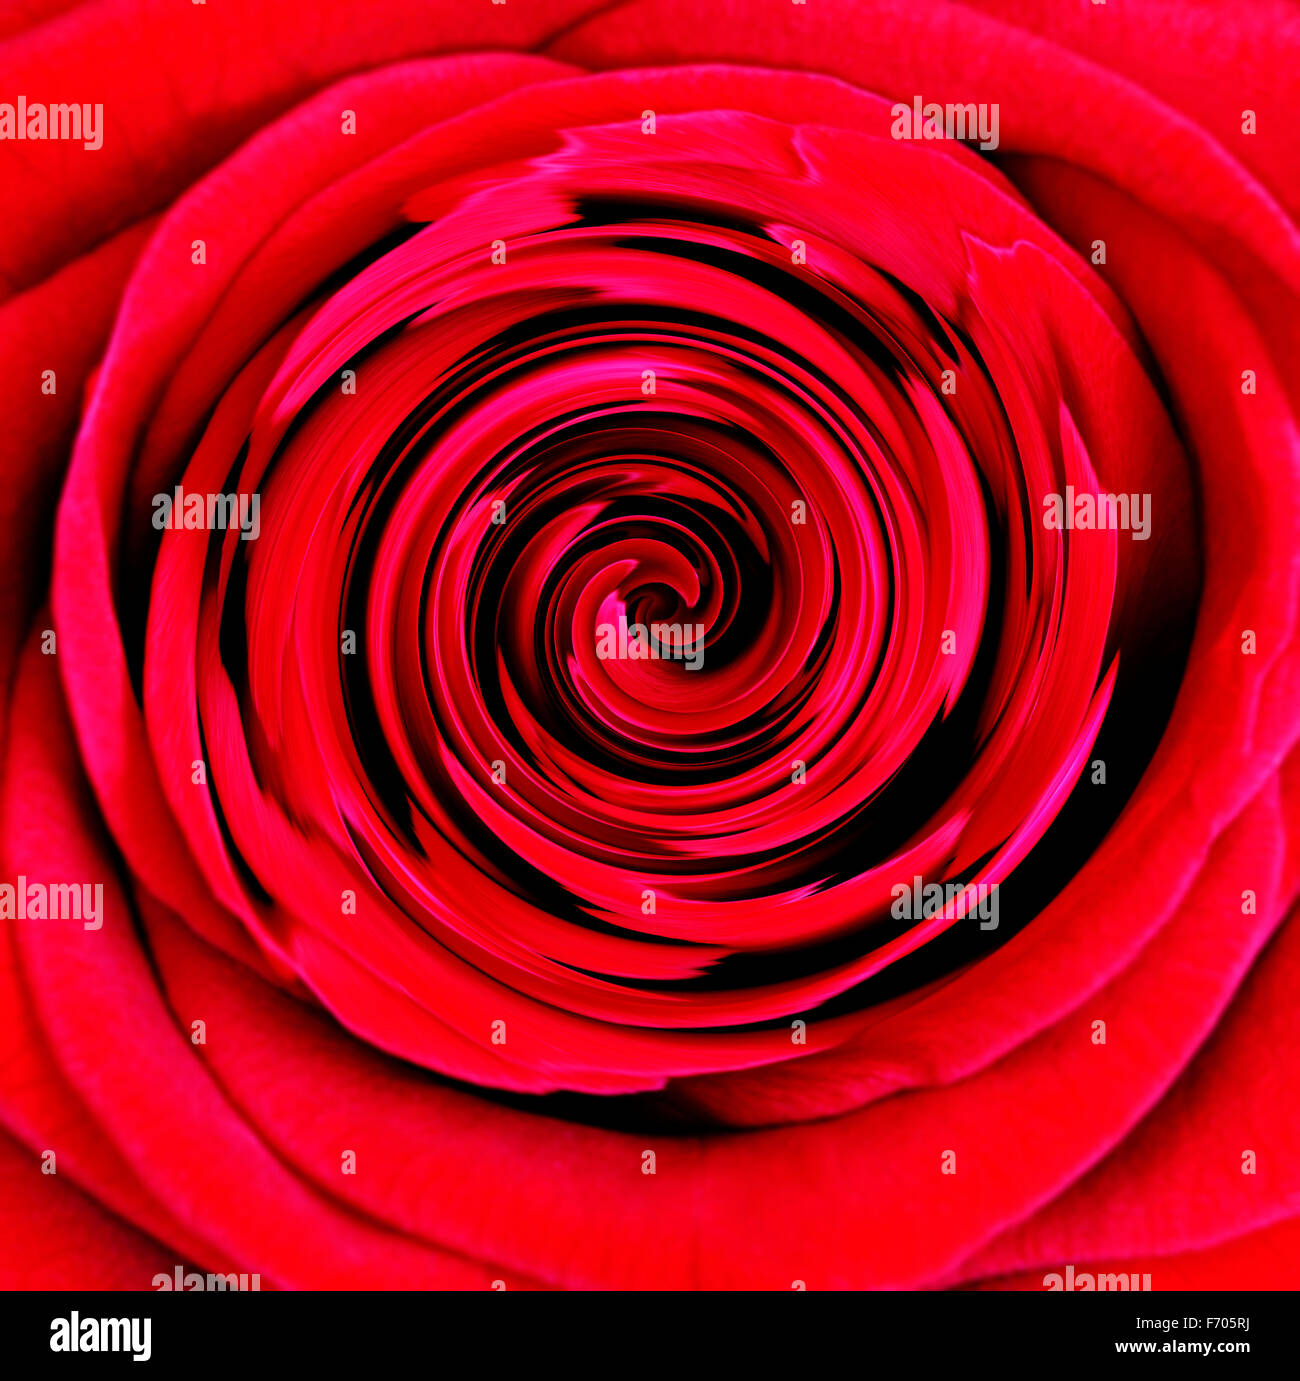 Red Rose swirl - Abstract Immagini Stock